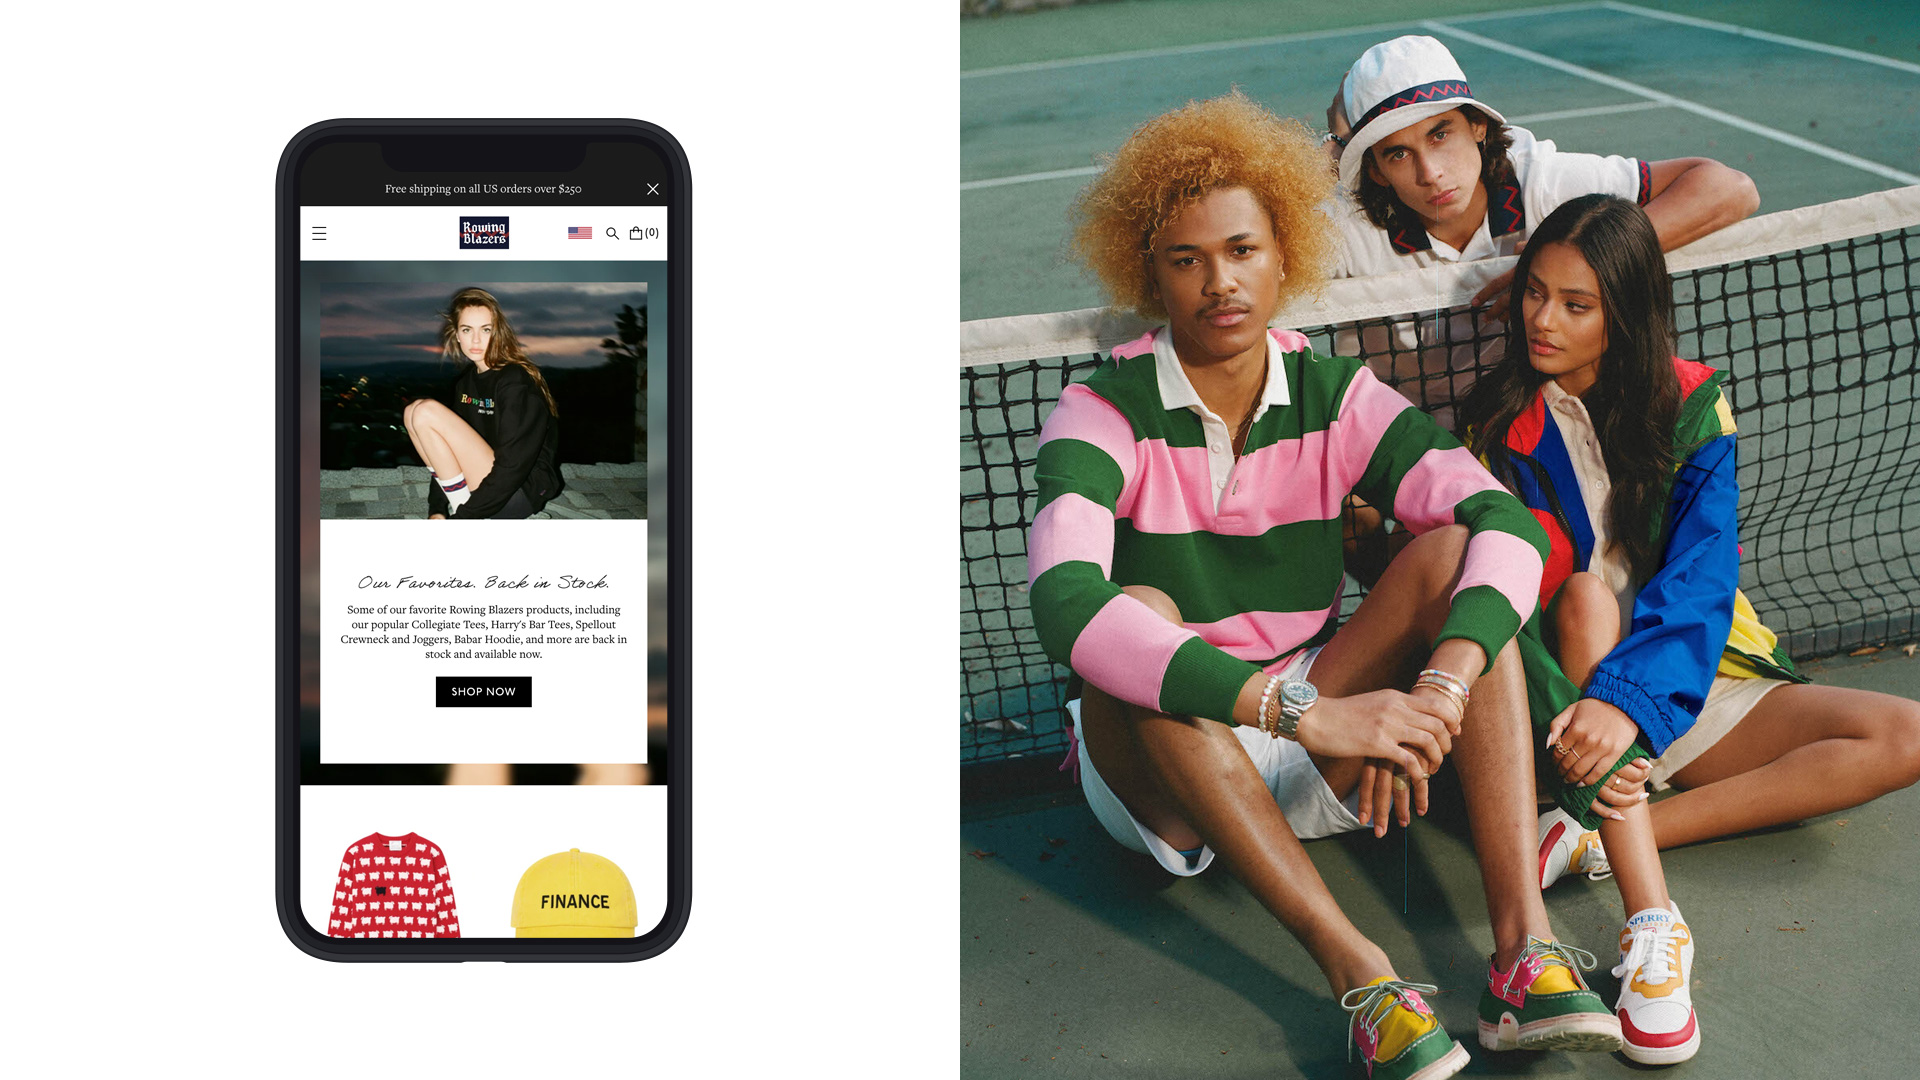 Rowing Blazers Homepage and Lifestyle Image